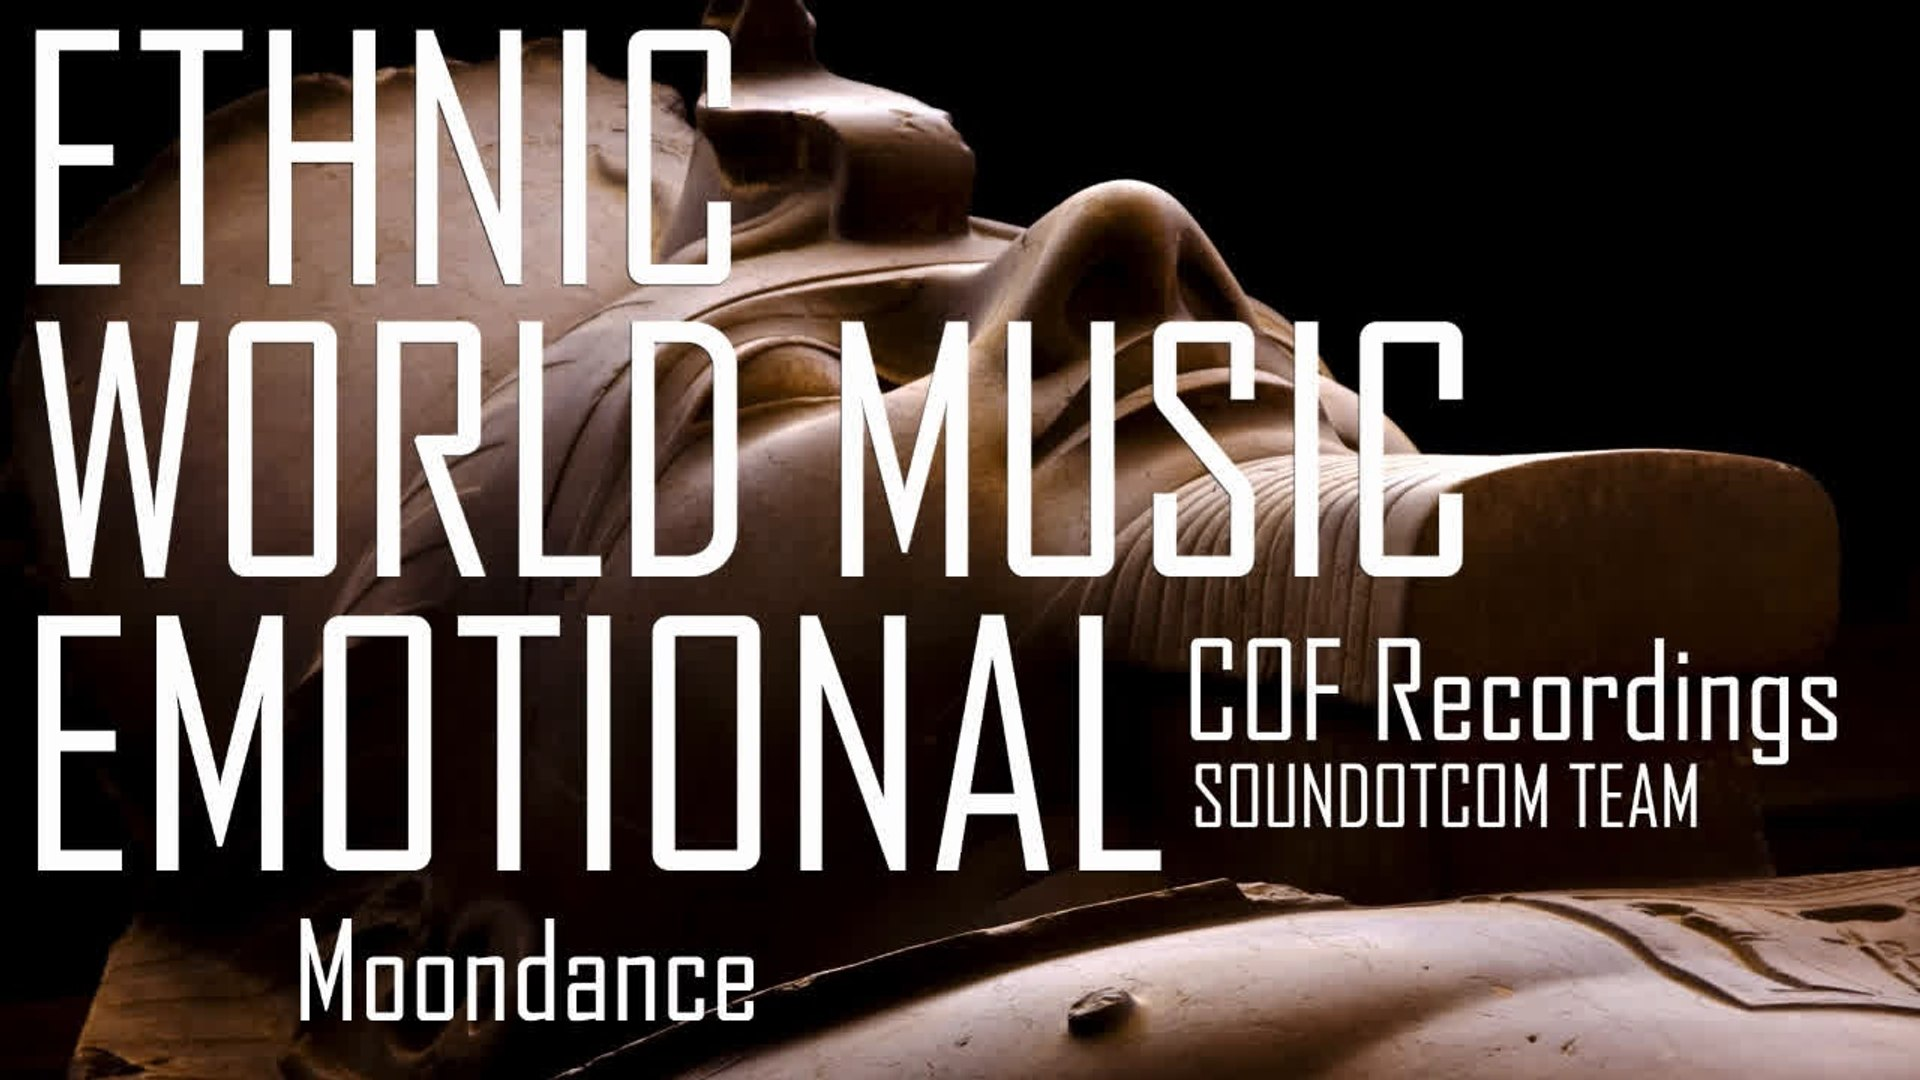 Royalty Free Music DOWNLOAD - World Music Ethnic Documentary | Moondance